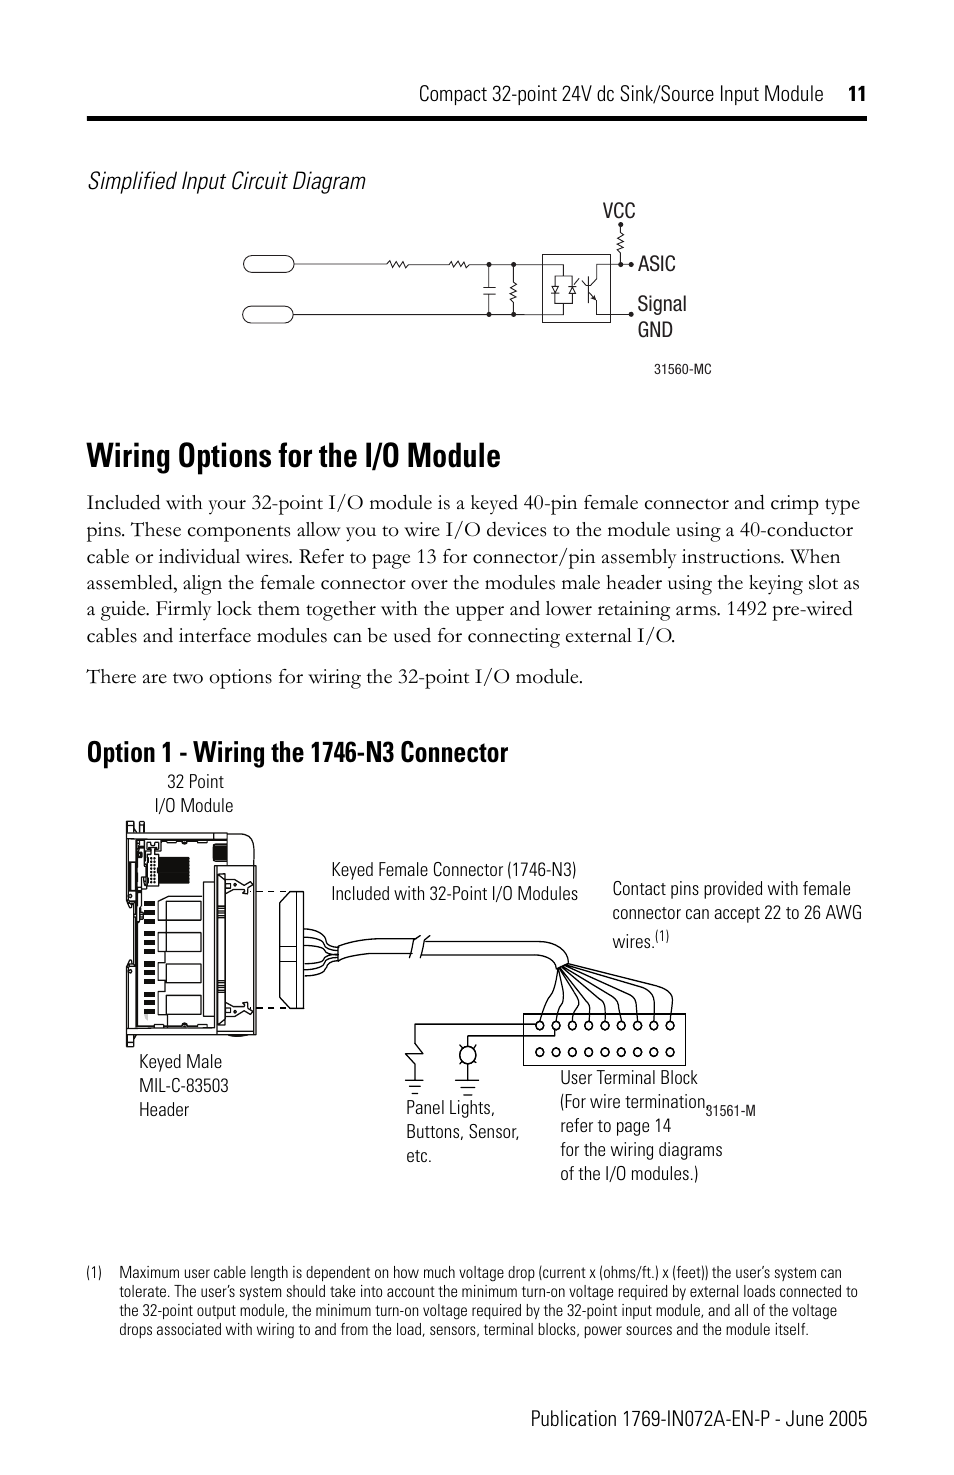 Proform Mc45 Wiring Diagram Block Wiring Diagram Explanation Source · Wiring  options for the i o module Rockwell Automation 1769 IQ32T Compact Module  User ...